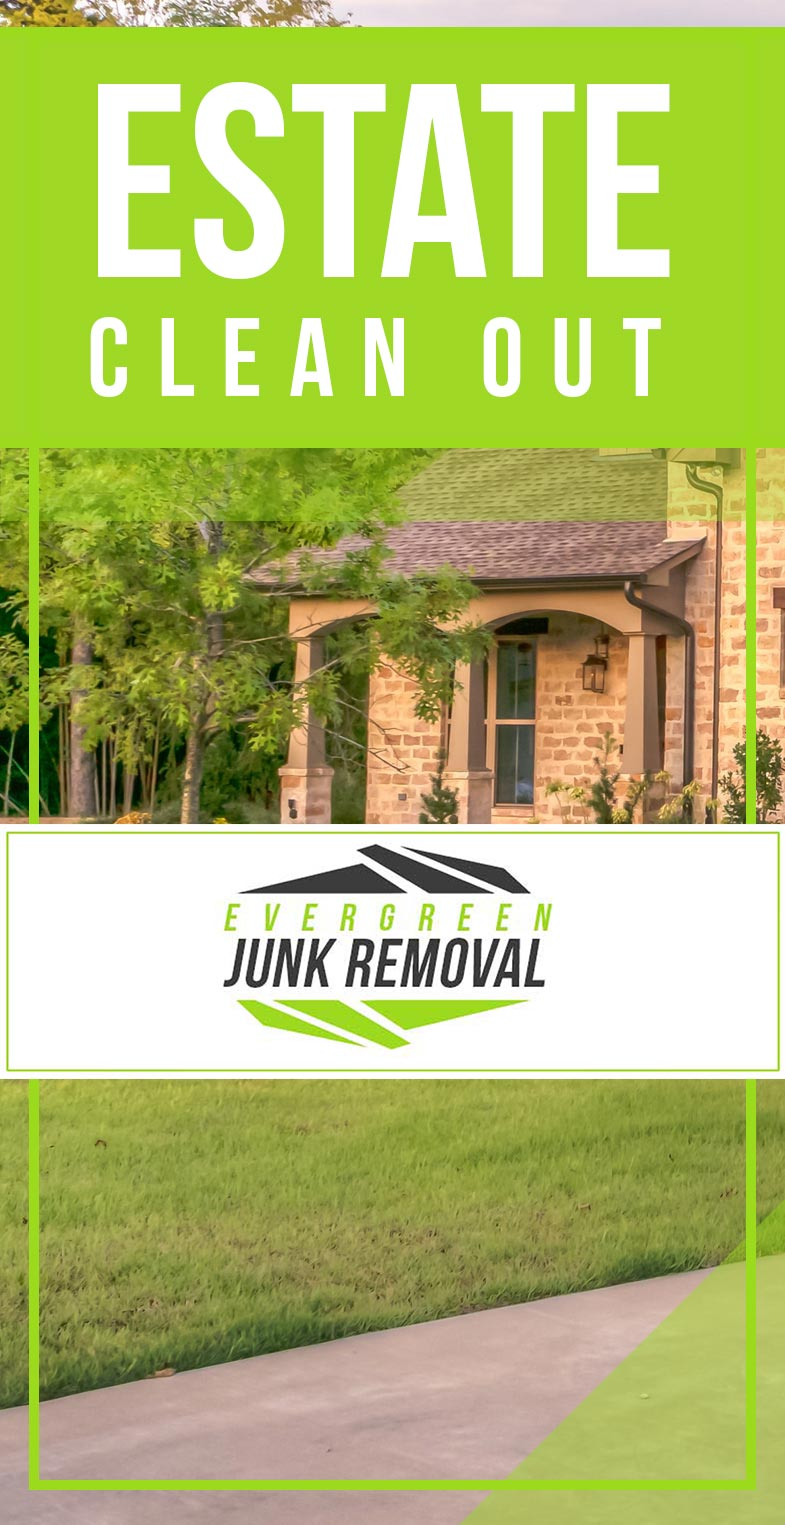 Baldwin Park Property Clean Out